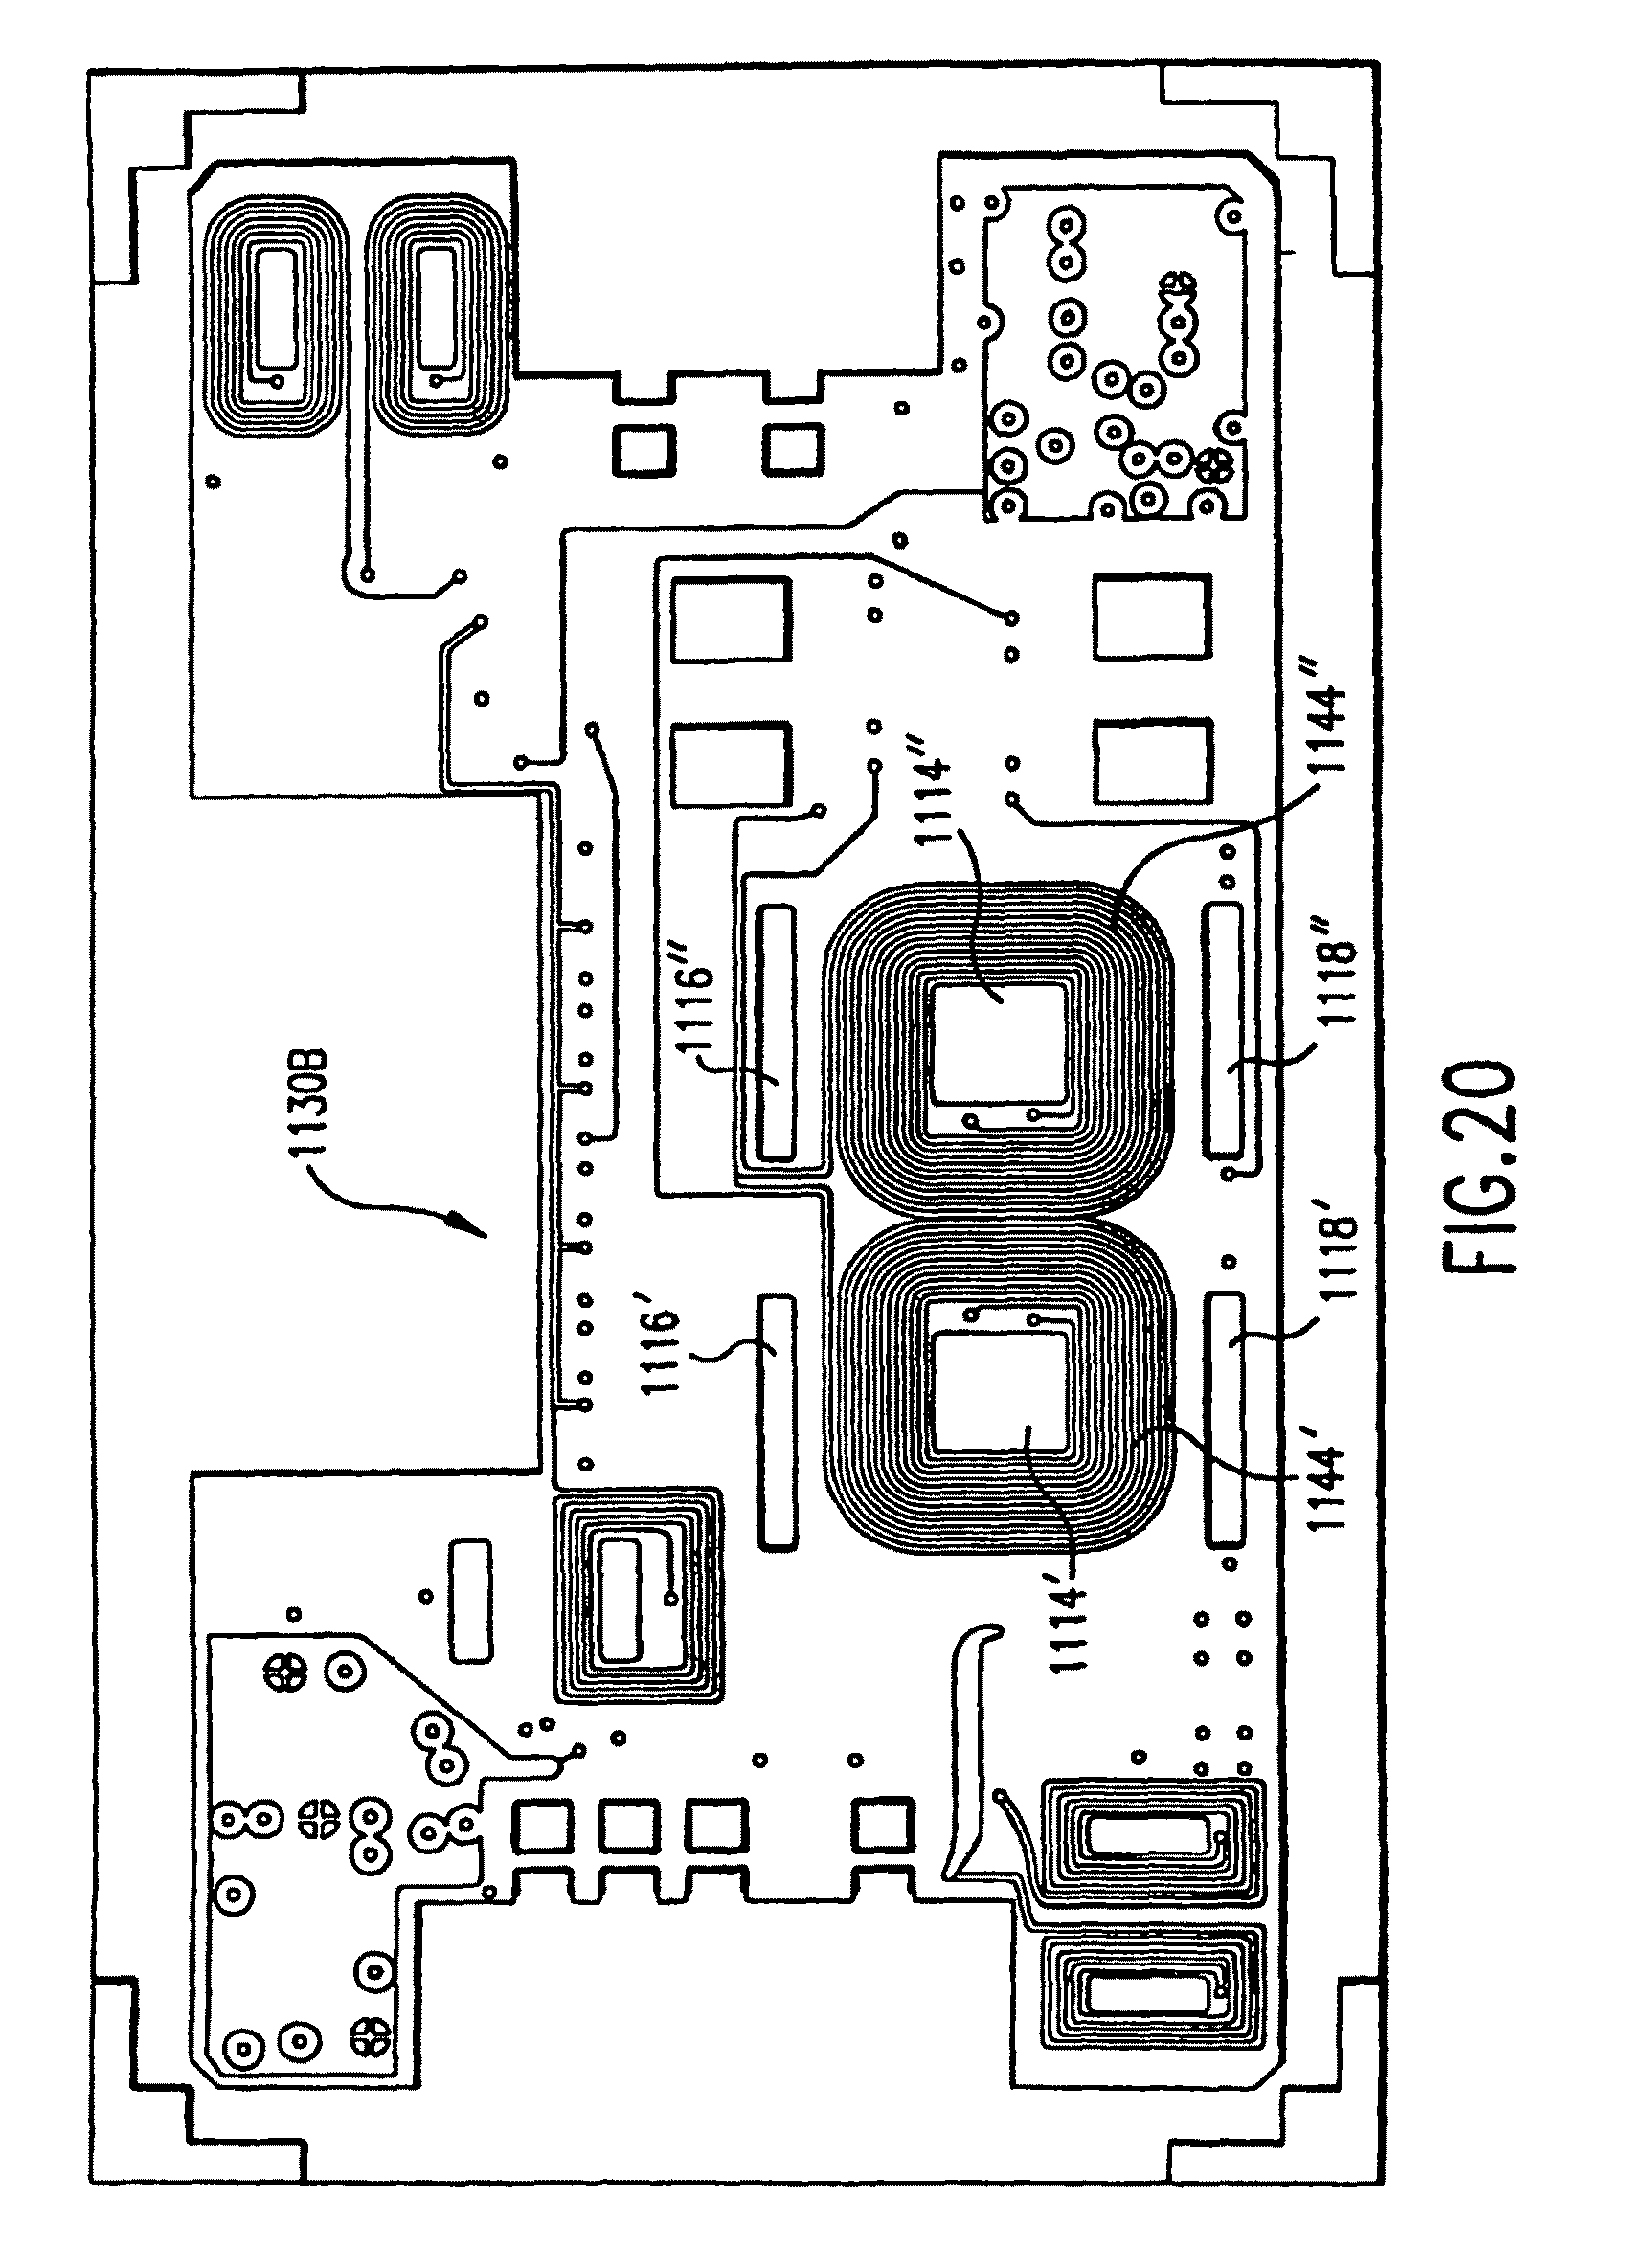 Patent Us7863770 Power Supply Equipment For Simultaneously 0 30 Vdc Stabilized With Current Control 0002 Drawing